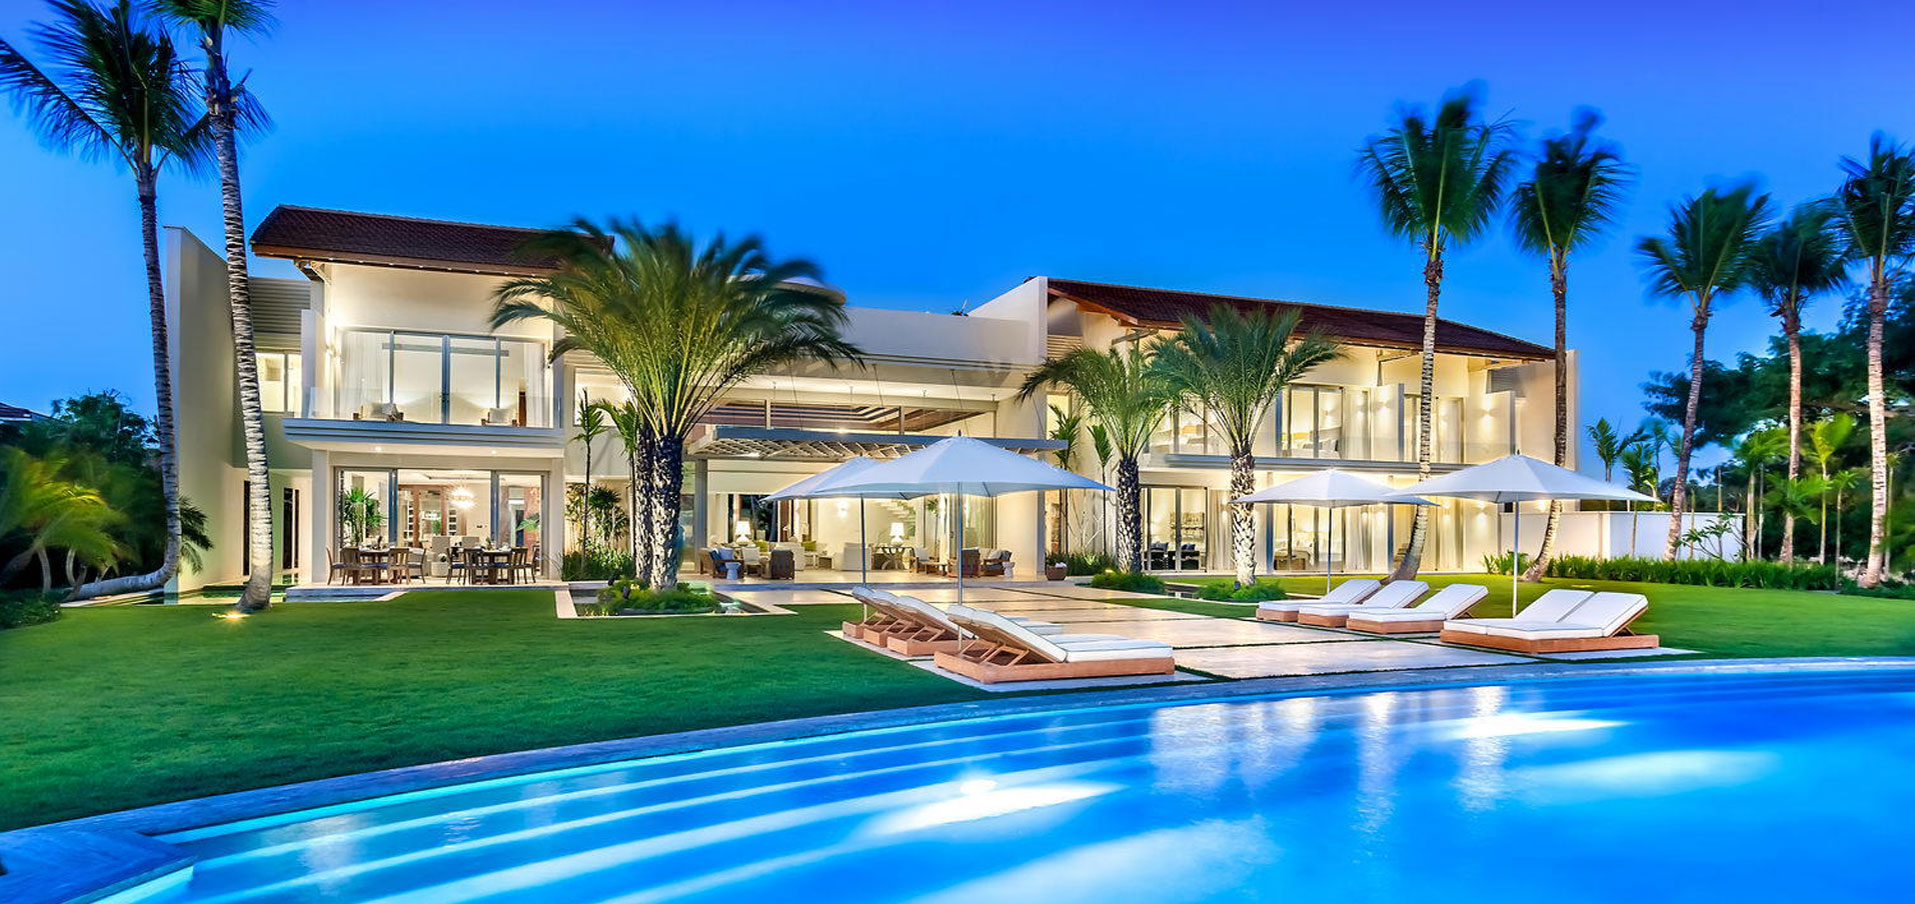 #0 Unique stunning modern waterfront mansion at Casa de Campo